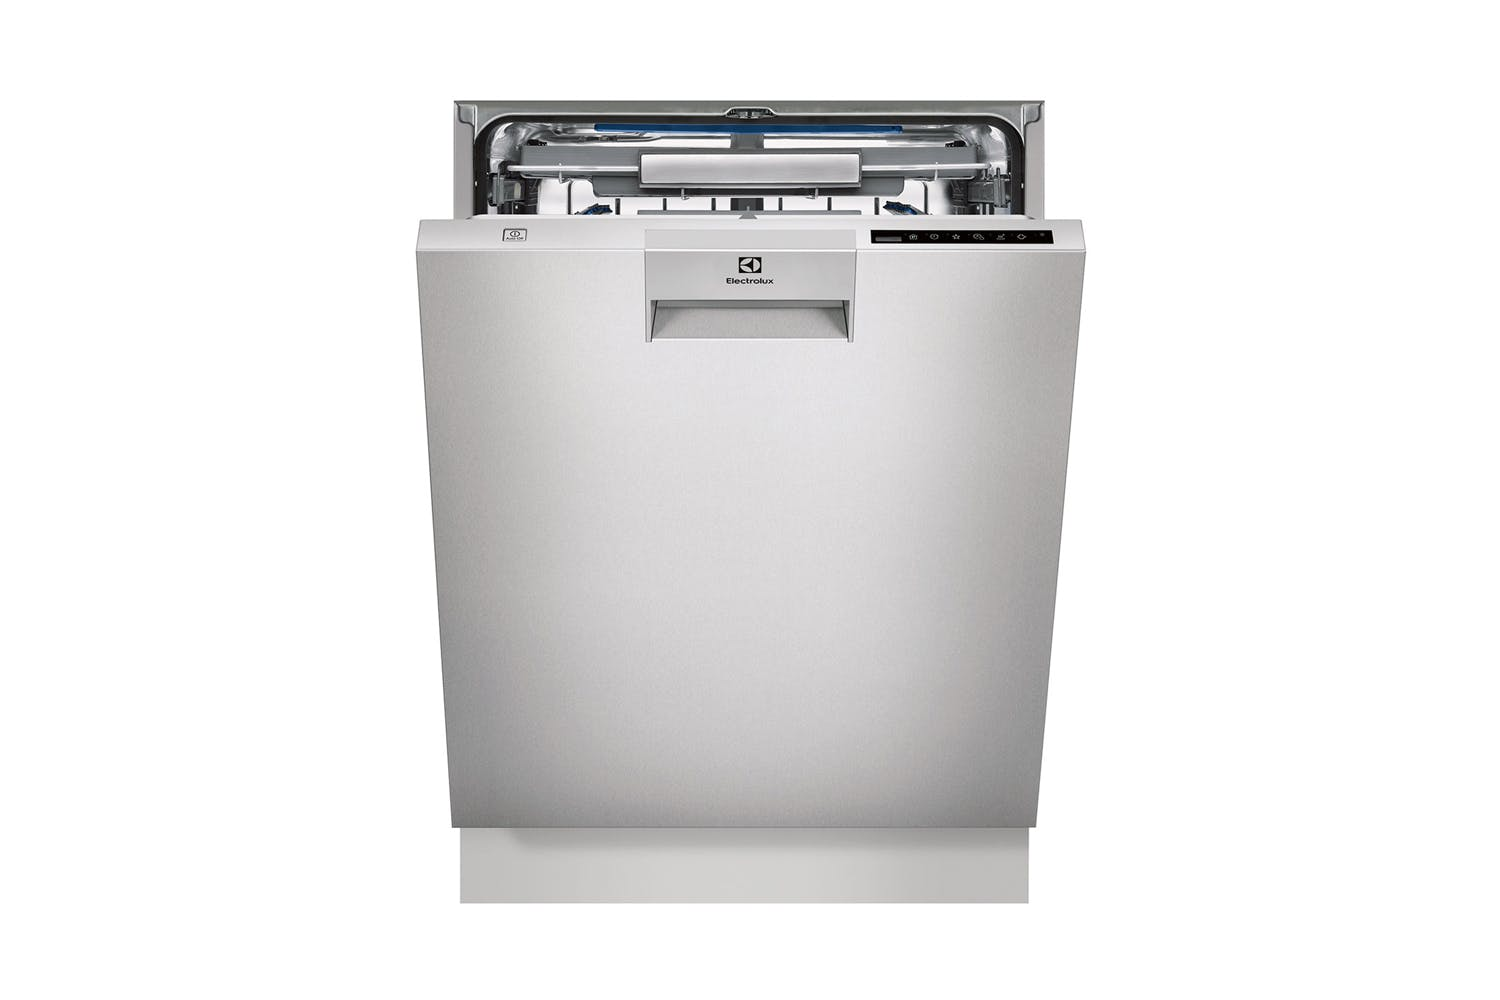 Image of Electrolux 14 Place Setting Built-Under Dishwasher - Stainless Steel